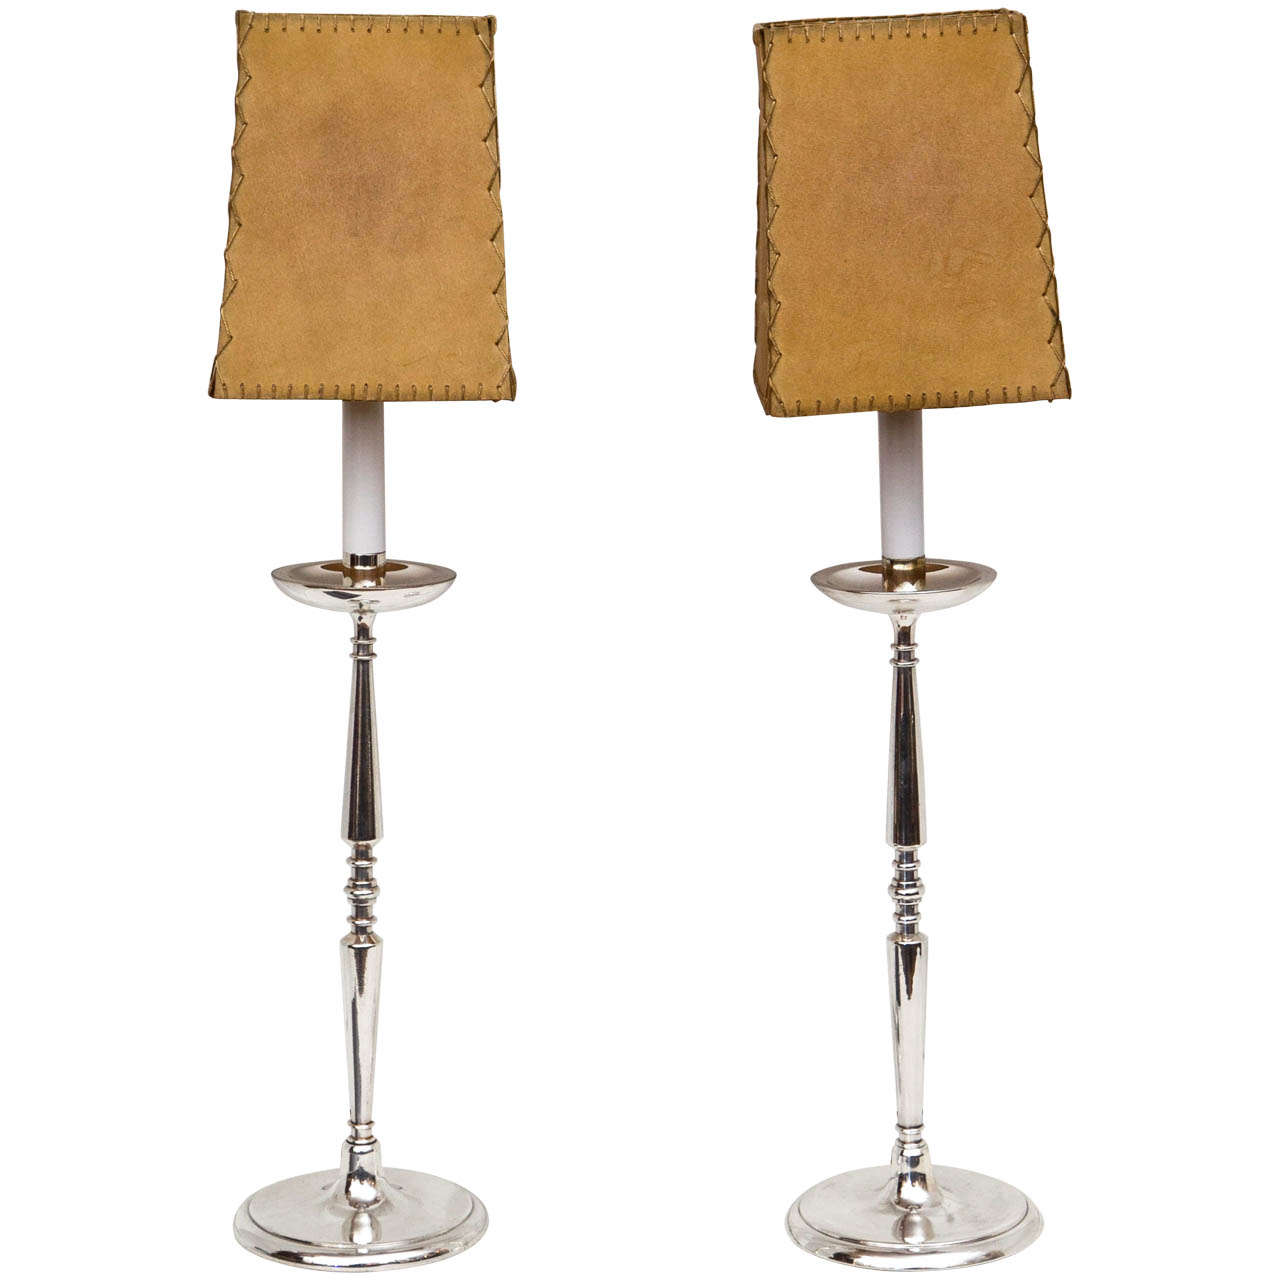 A Pair Of French Silverplate Candlestick Lamps With